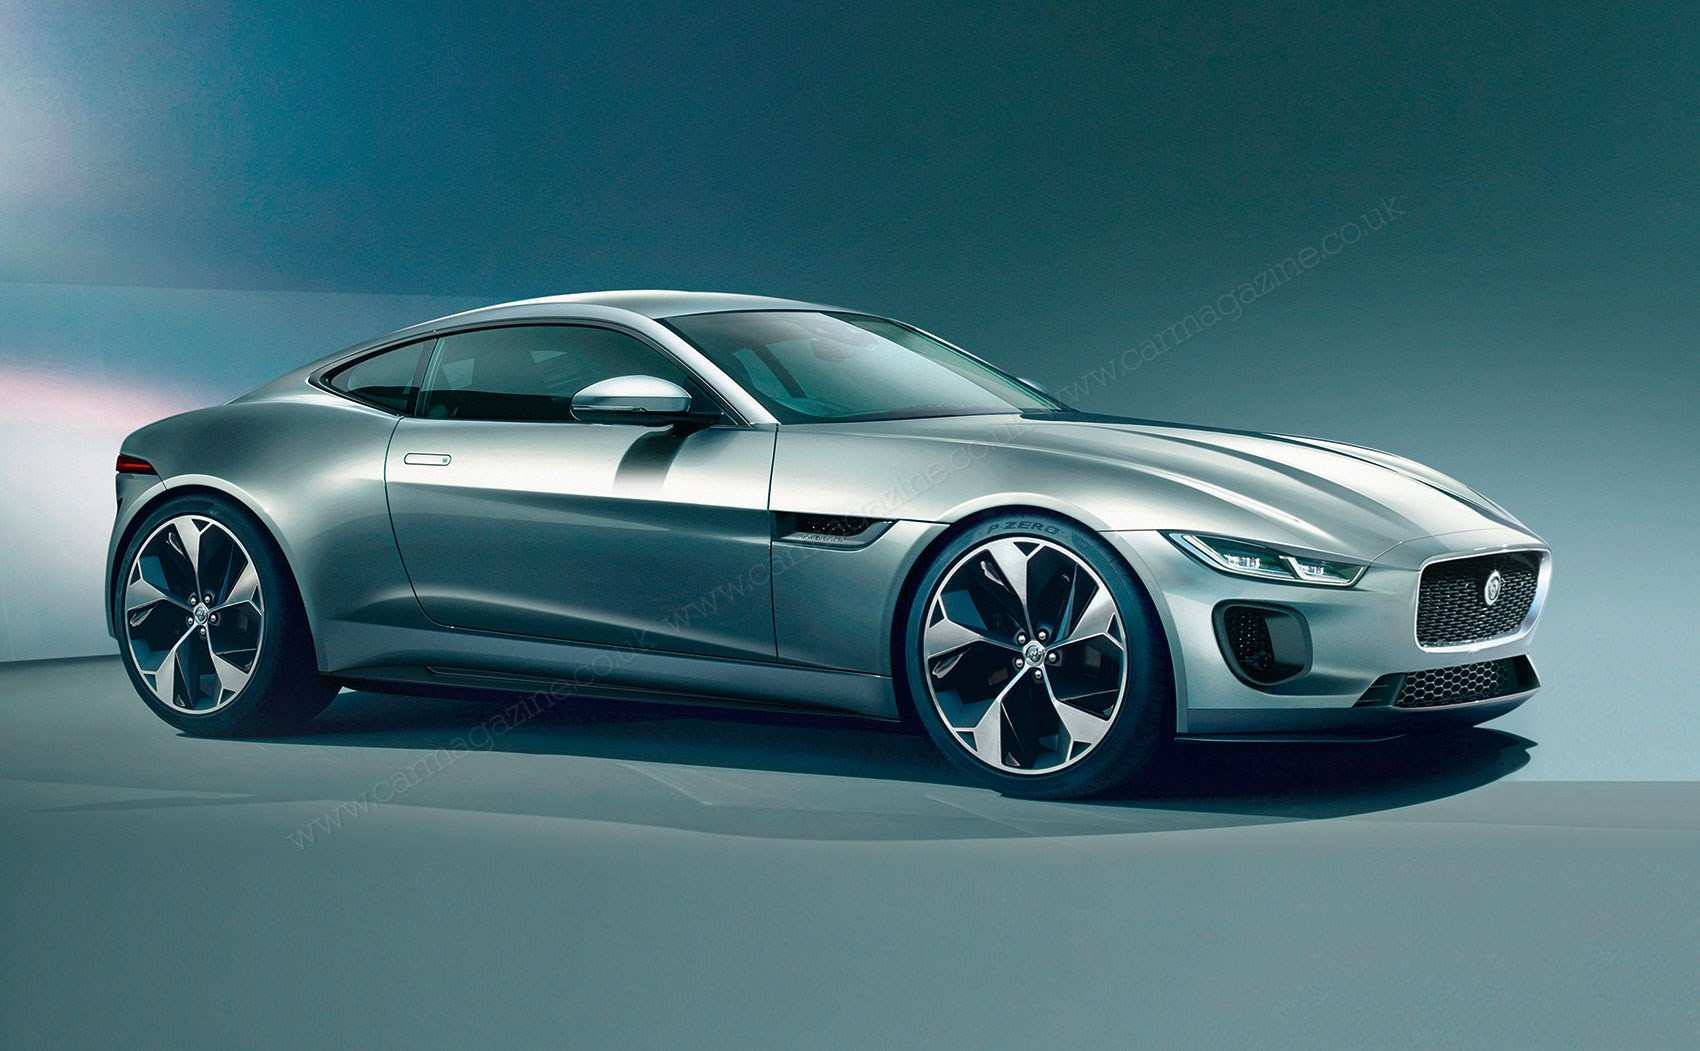 76 Concept of 2020 Jaguar F Type Svr Ratings for 2020 Jaguar F Type Svr